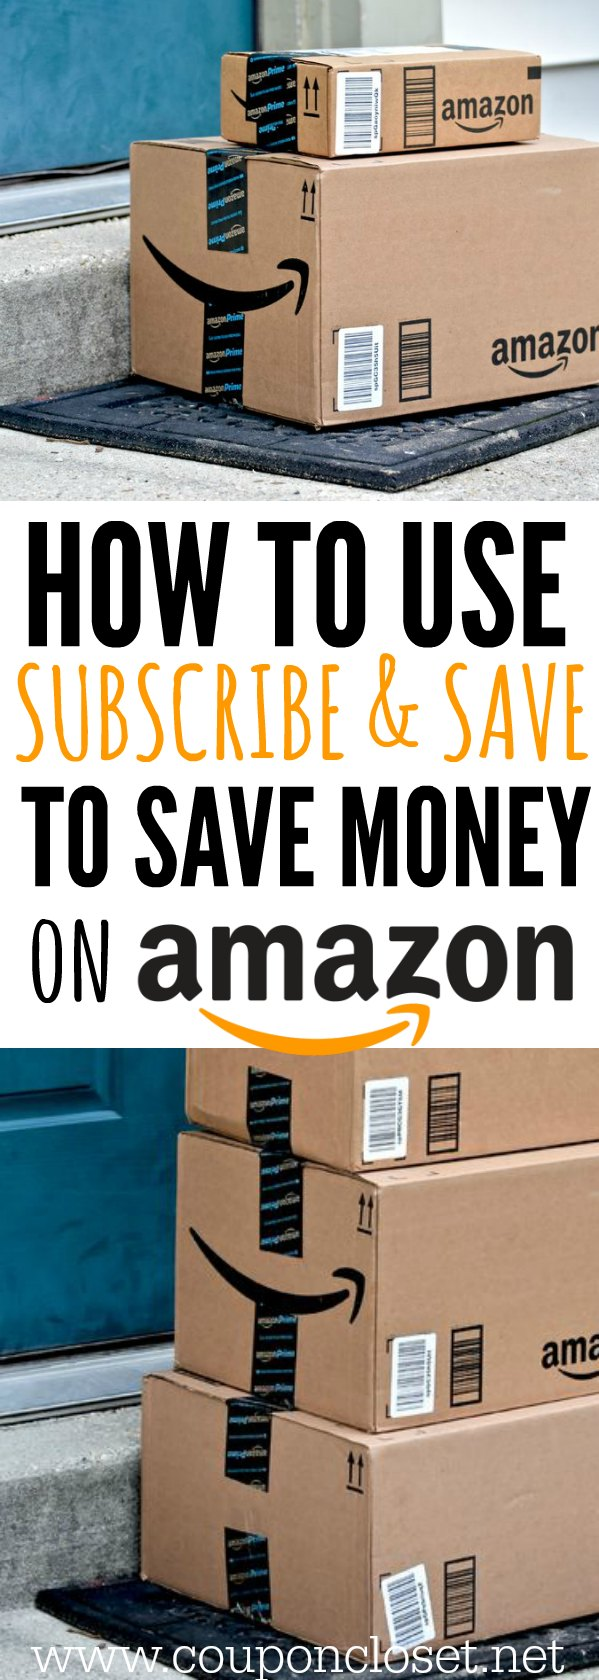 Amazon Subscribe and Save is easy to use. How to use Amazon Subscribe and Save to save money. Saving money on household items and food.